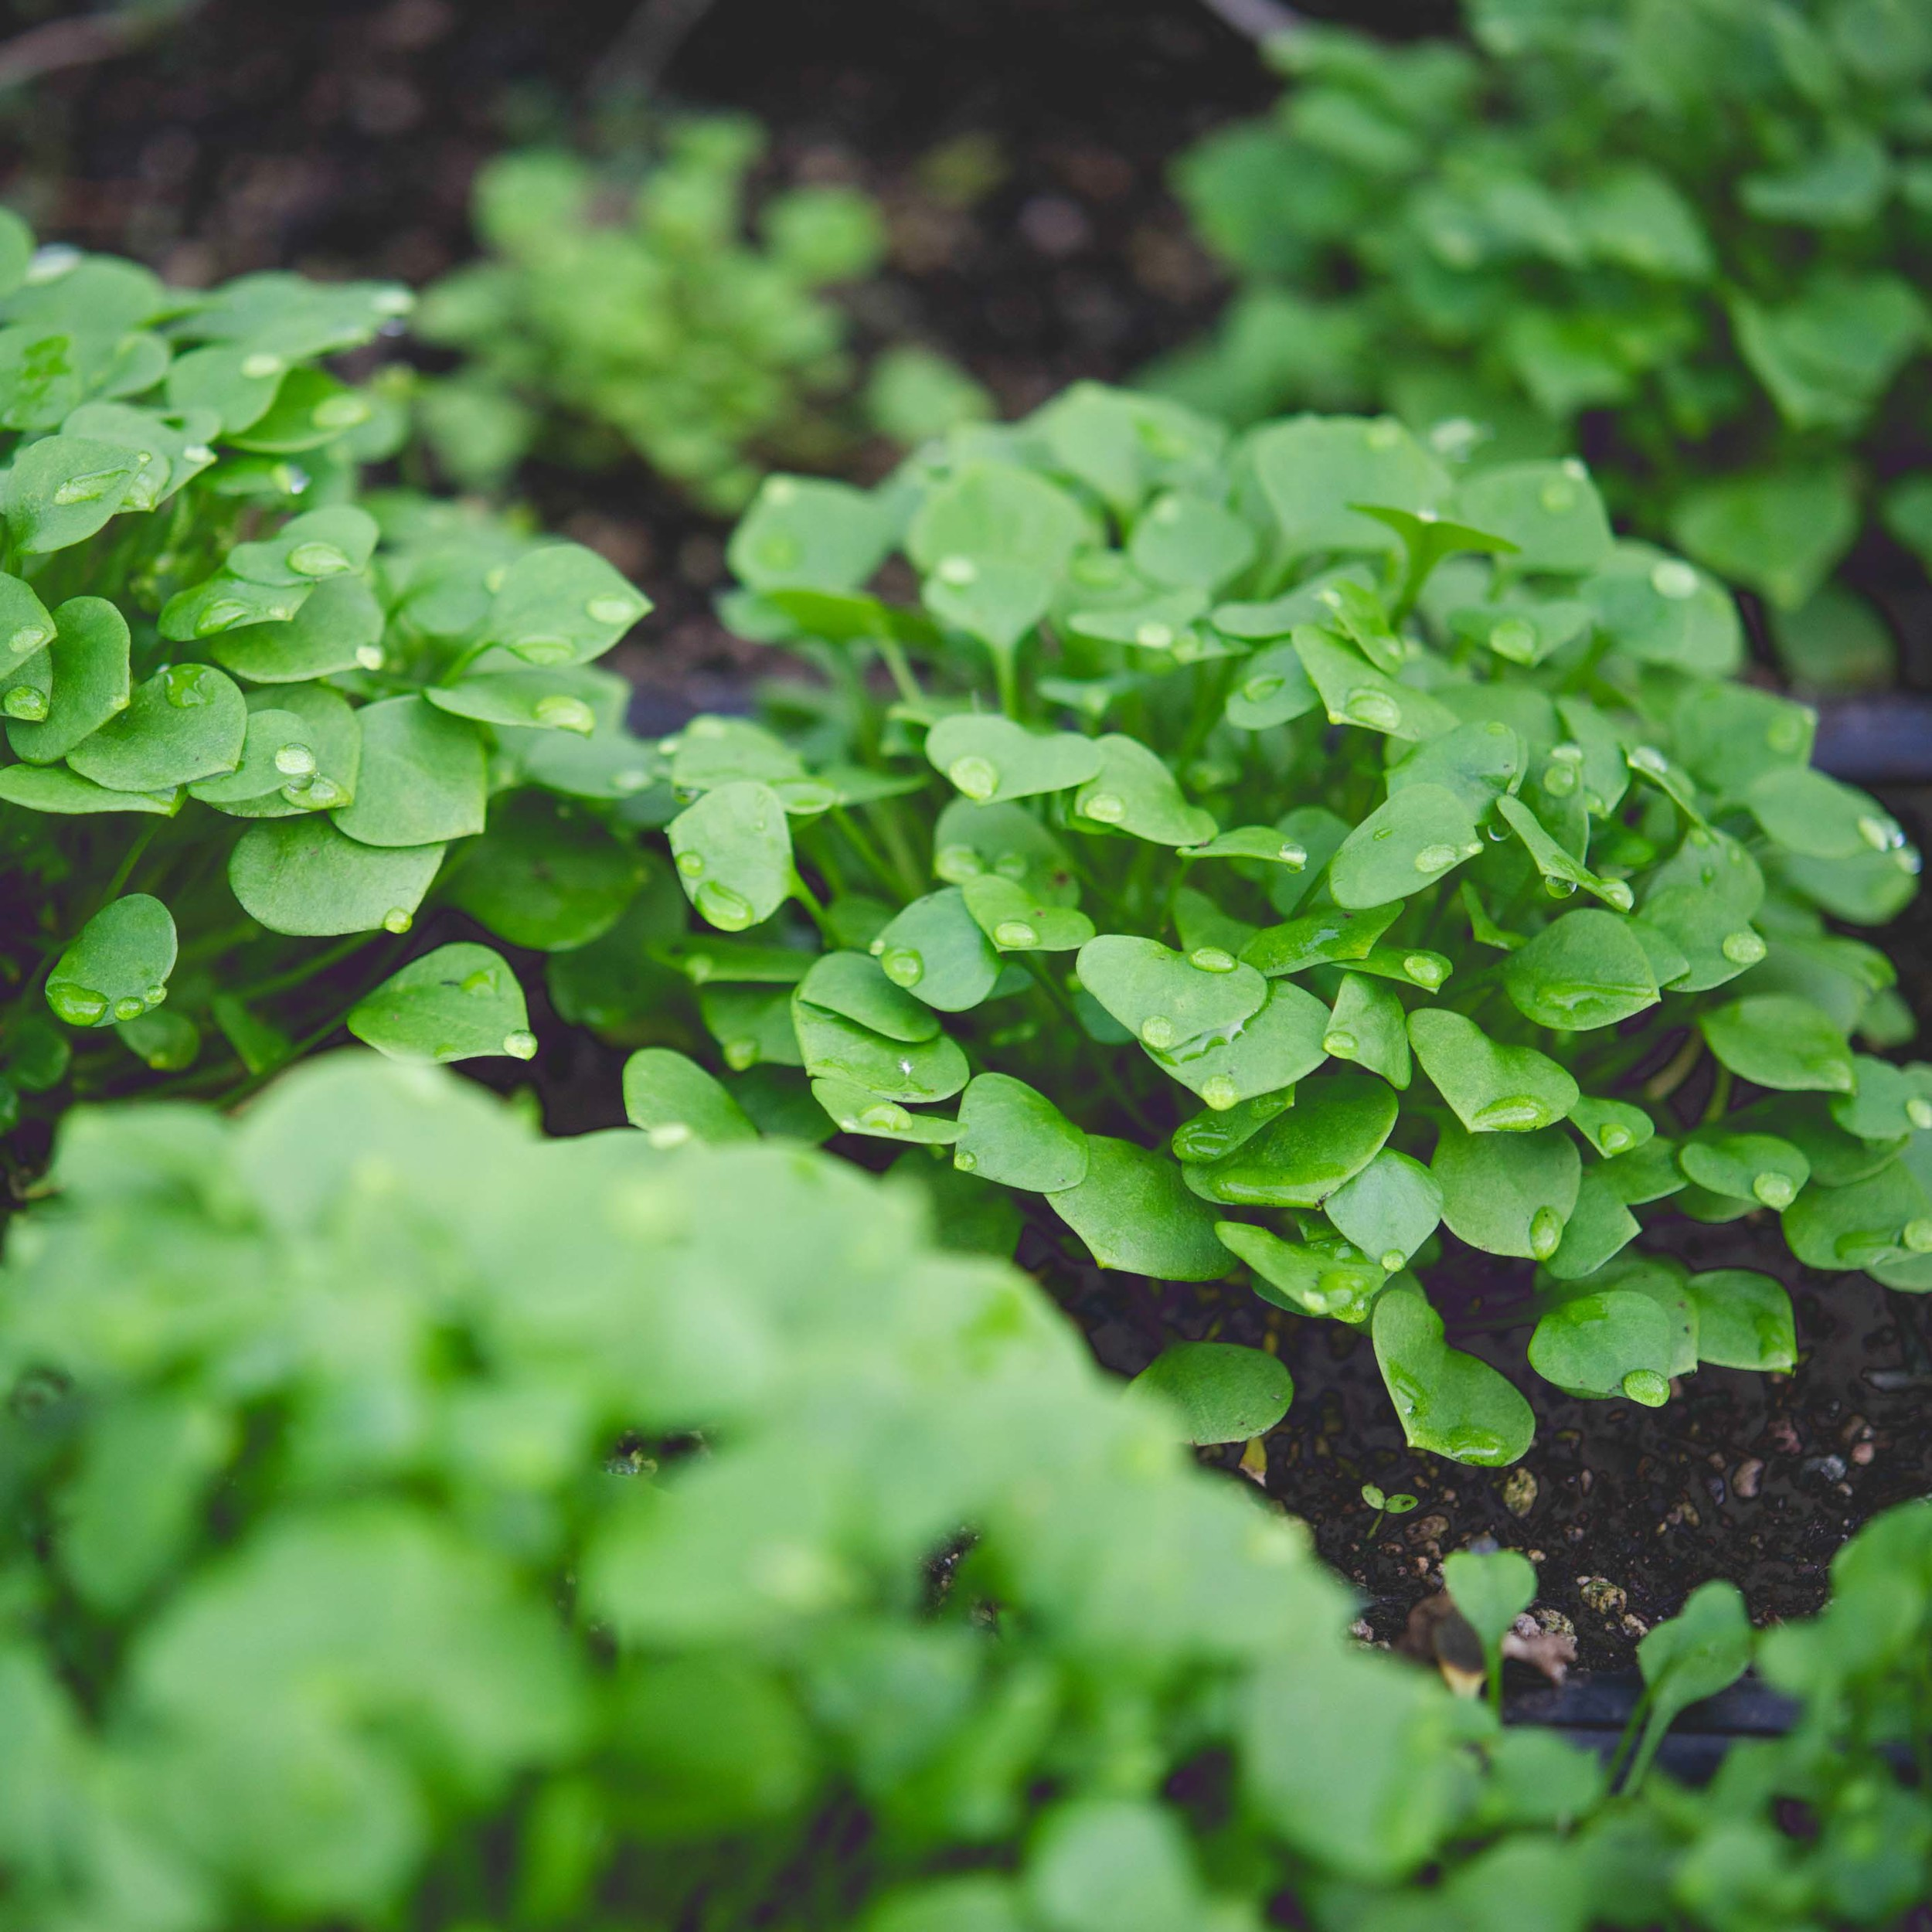 Claytonia   Claytonia*  //  Hardiest of the winter salad greens, can tolerate moderate frost and can be grown all winter in mild regions.